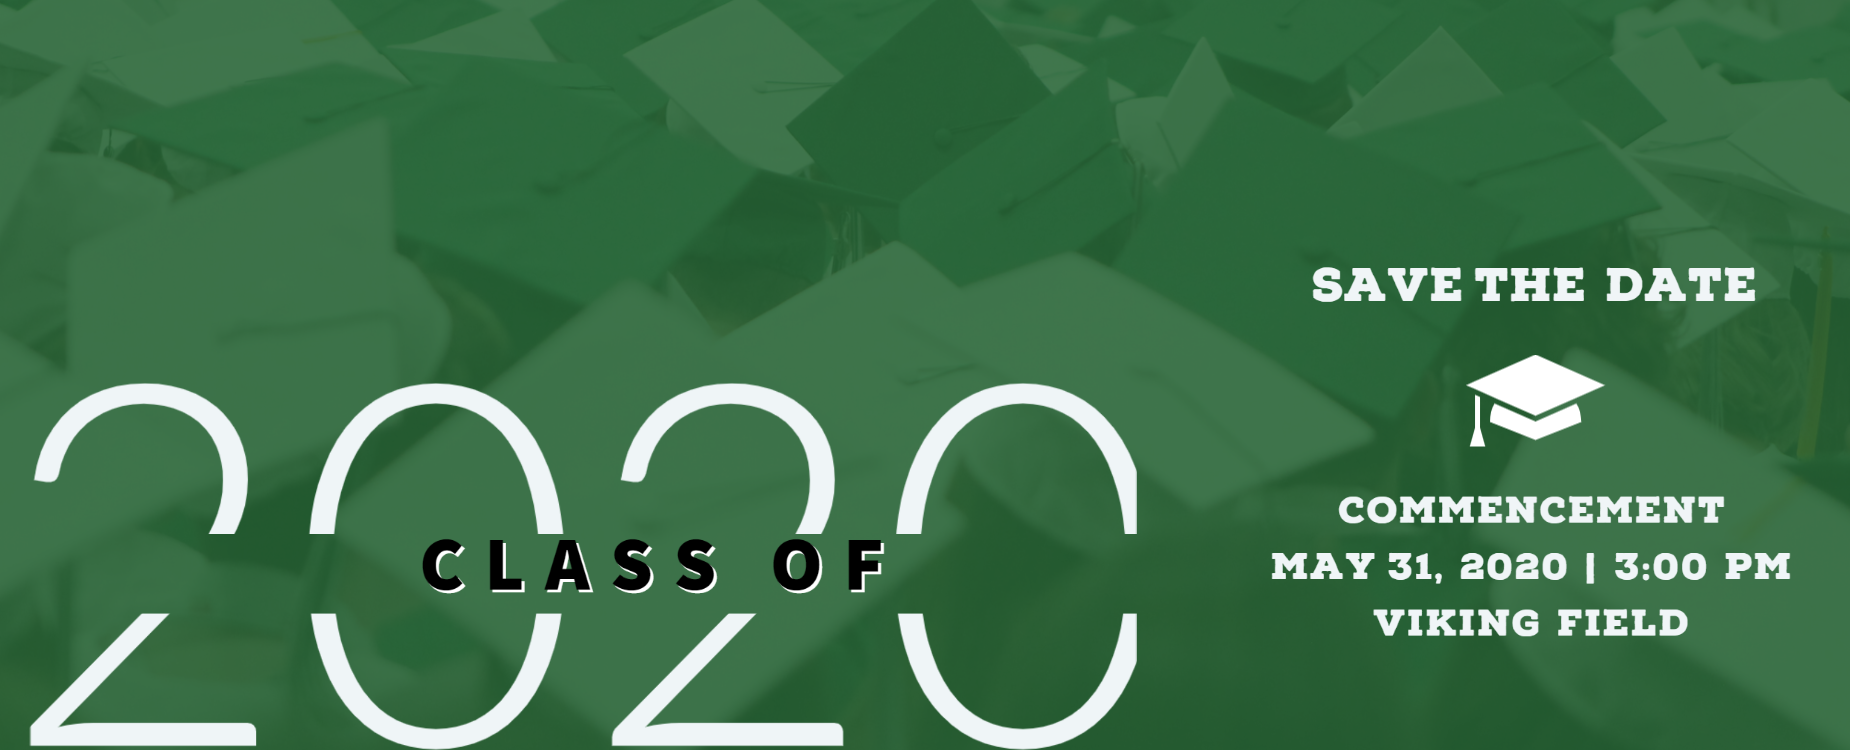 Class of 2020 Commencement Save the Date Commencement May 31, 2020 | 3:00 pm Viking Field